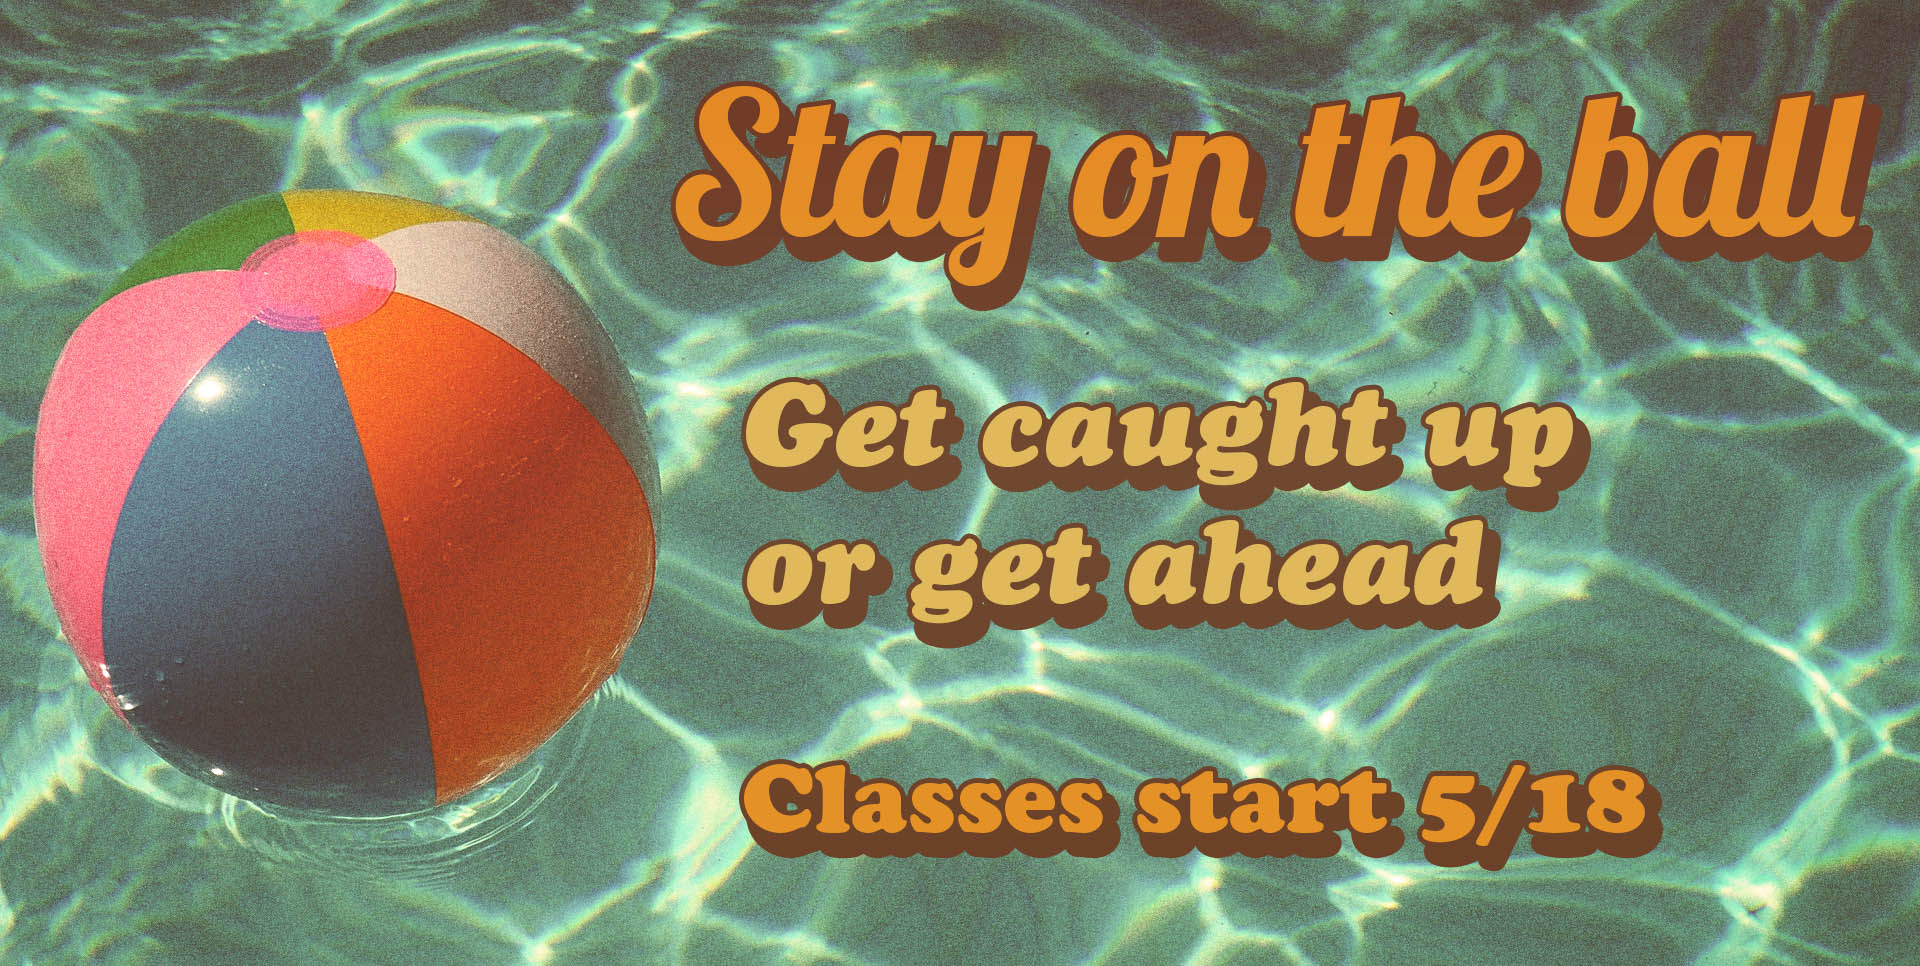 Stay on the Ball! Get caught up or get ahead. Classes start 5/16.